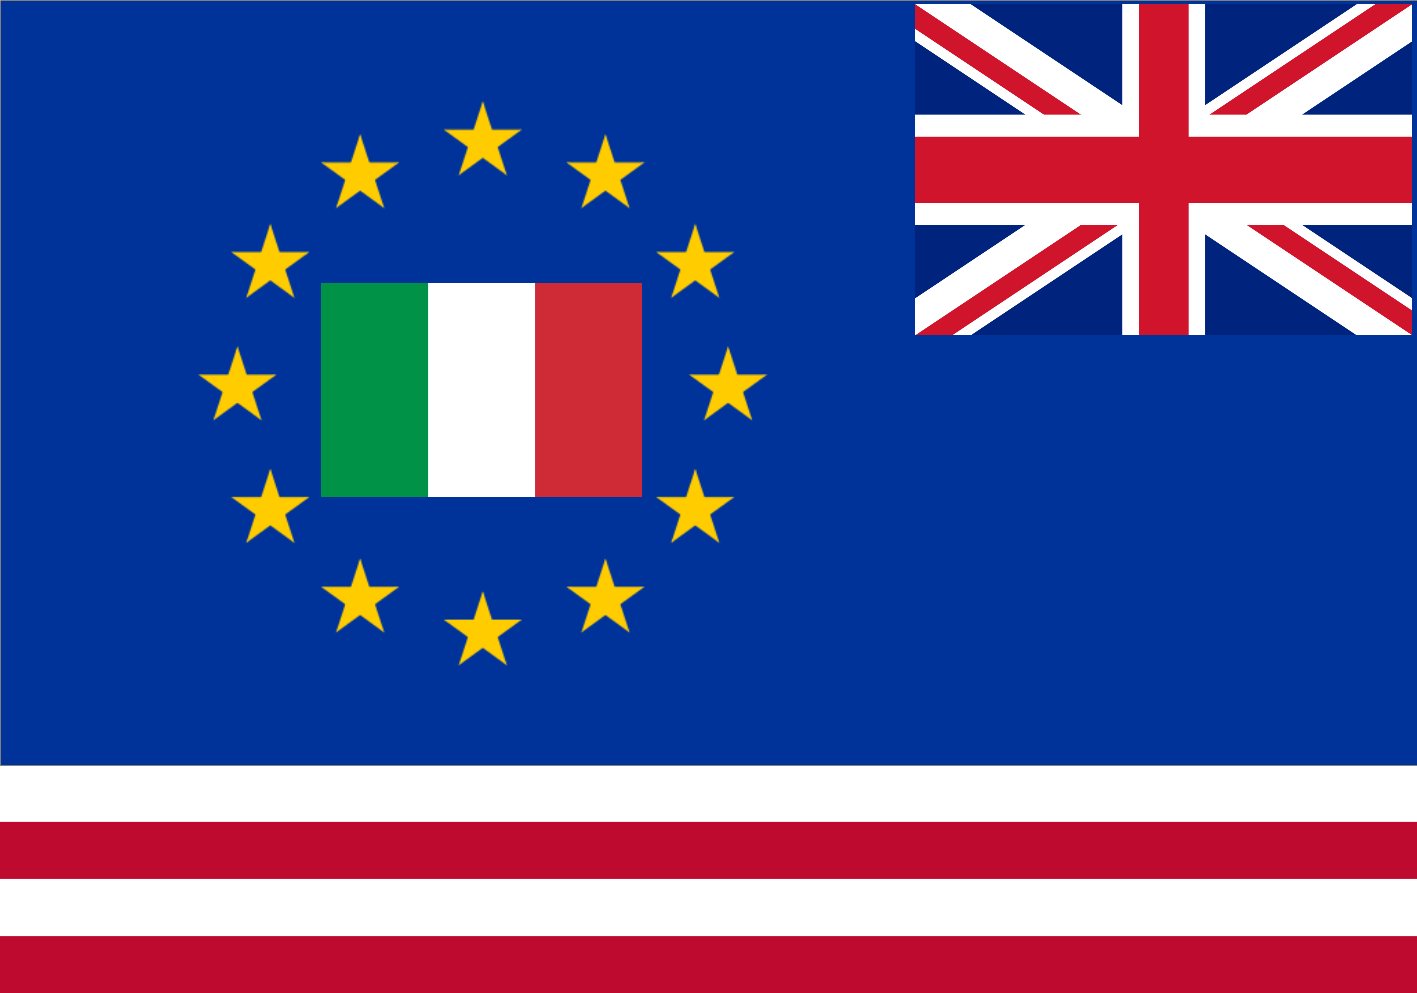 Duccio_studio_flag_pro_english_language_post_brexit